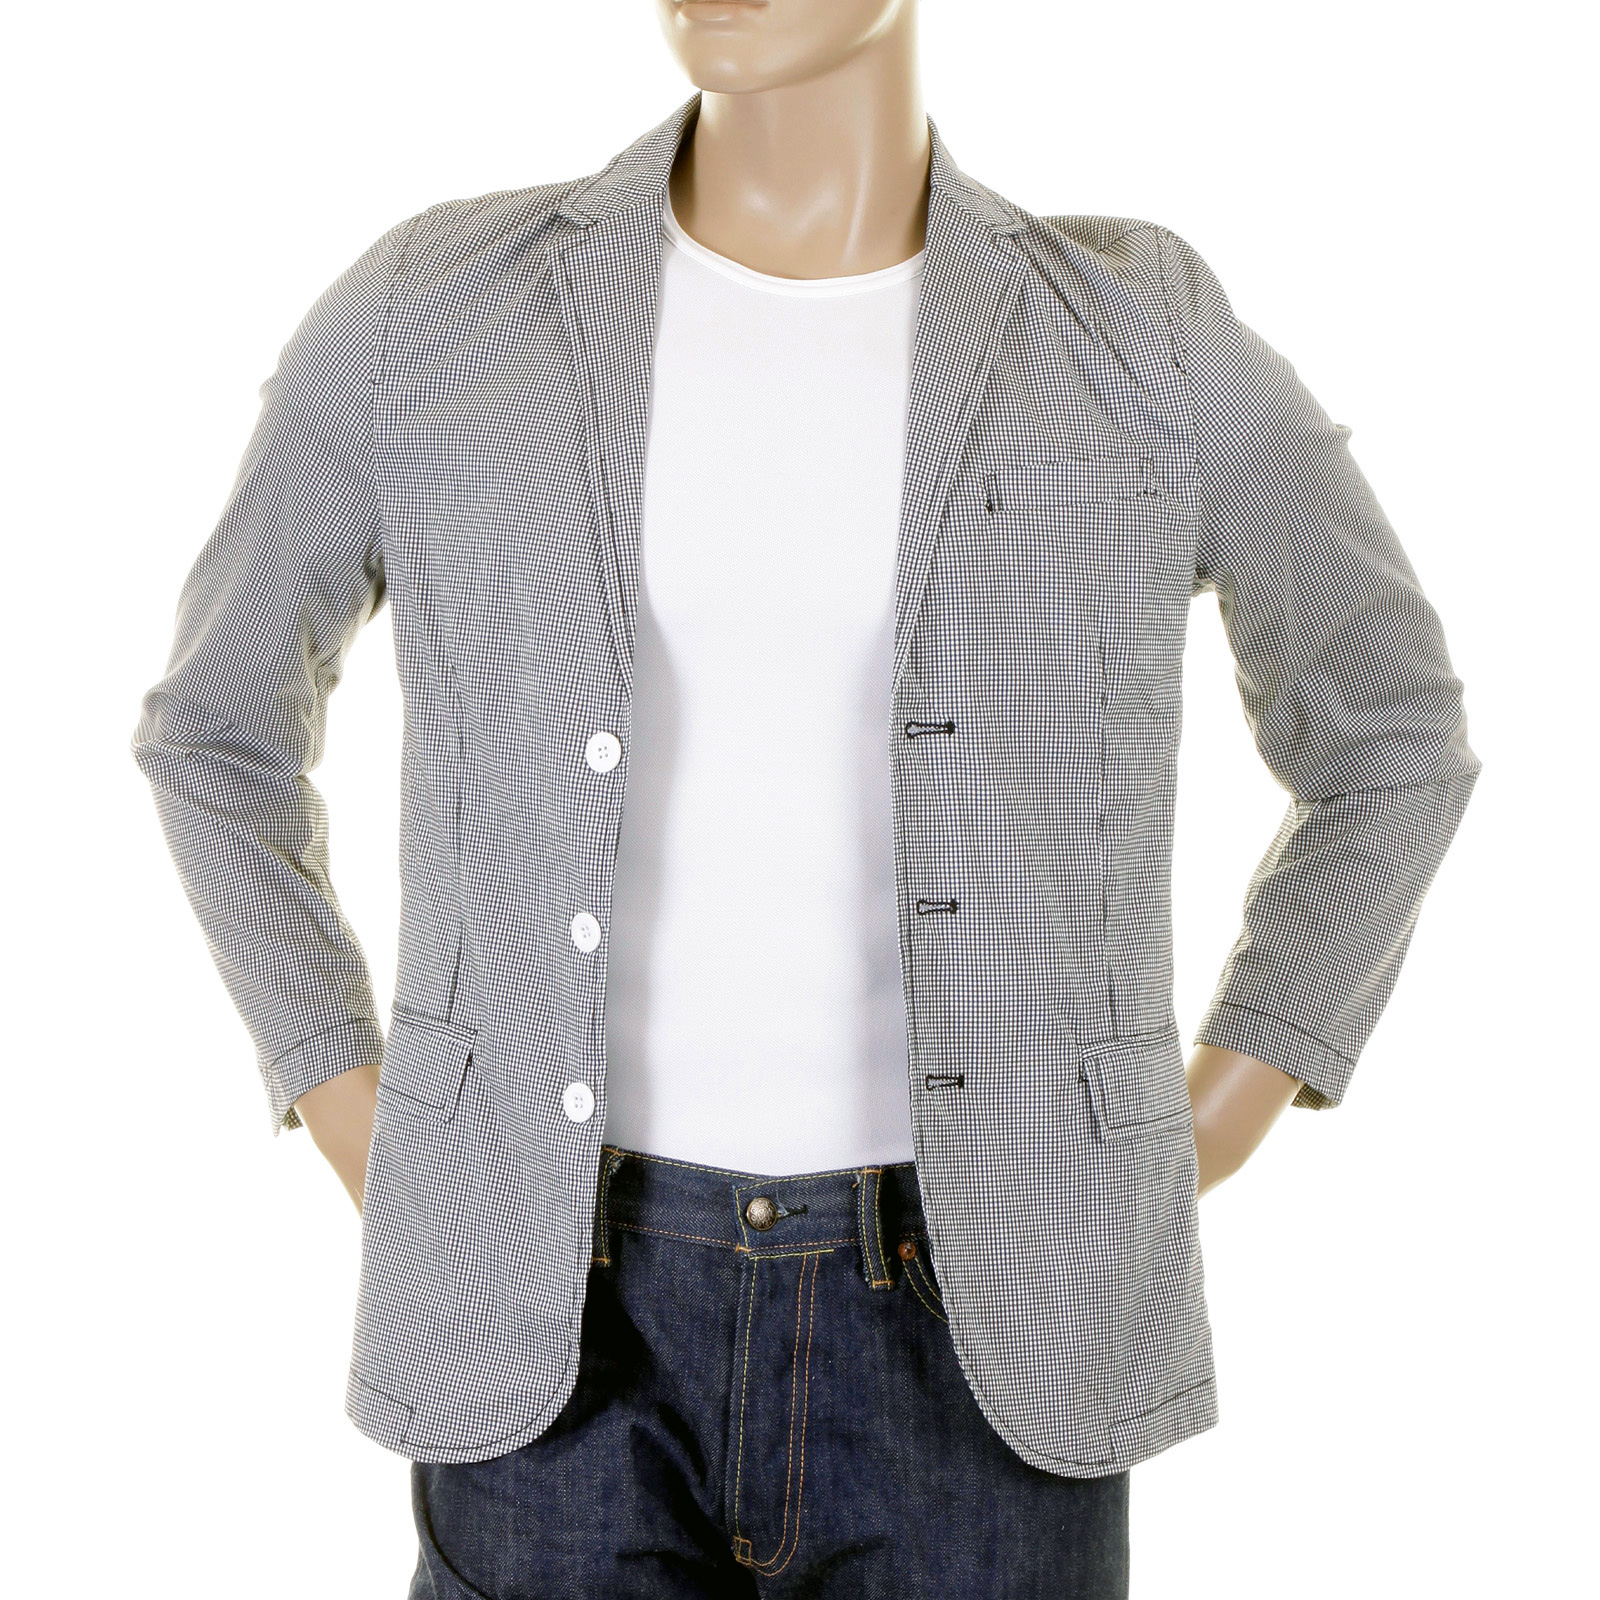 Mens Blazer from RMC Jeans